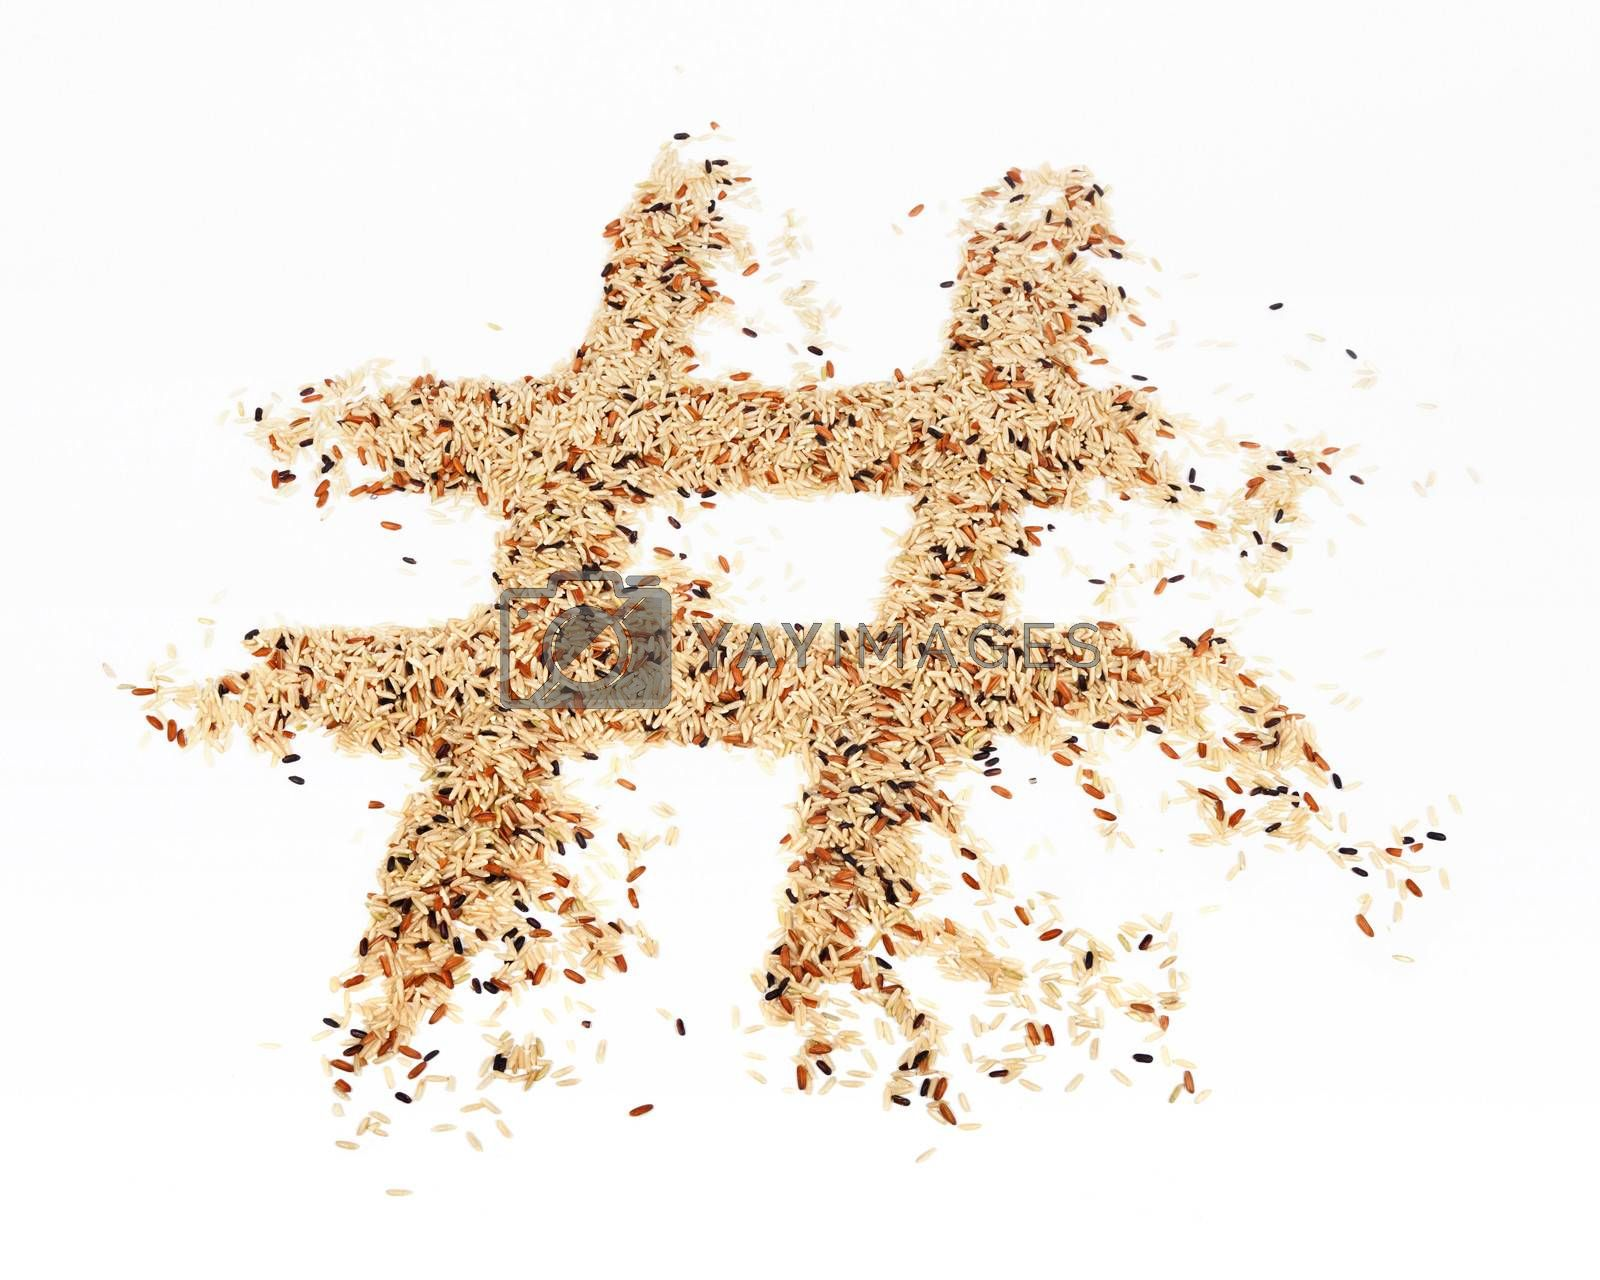 Royalty free image of Rice Hashtag by mothy20